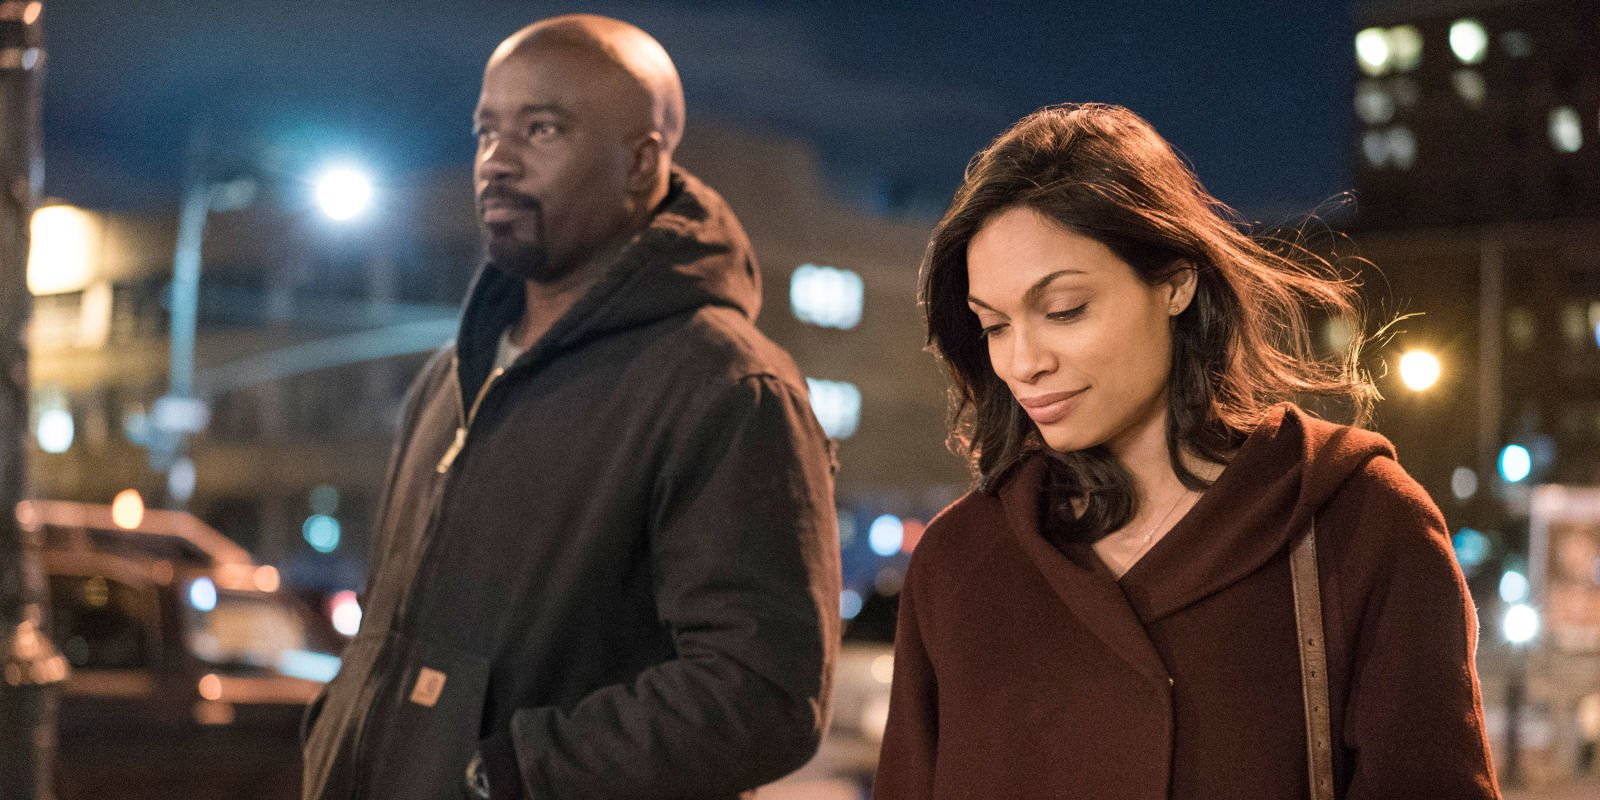 Rosario Dawson might be finished with Marvel after Luke Cage season 2